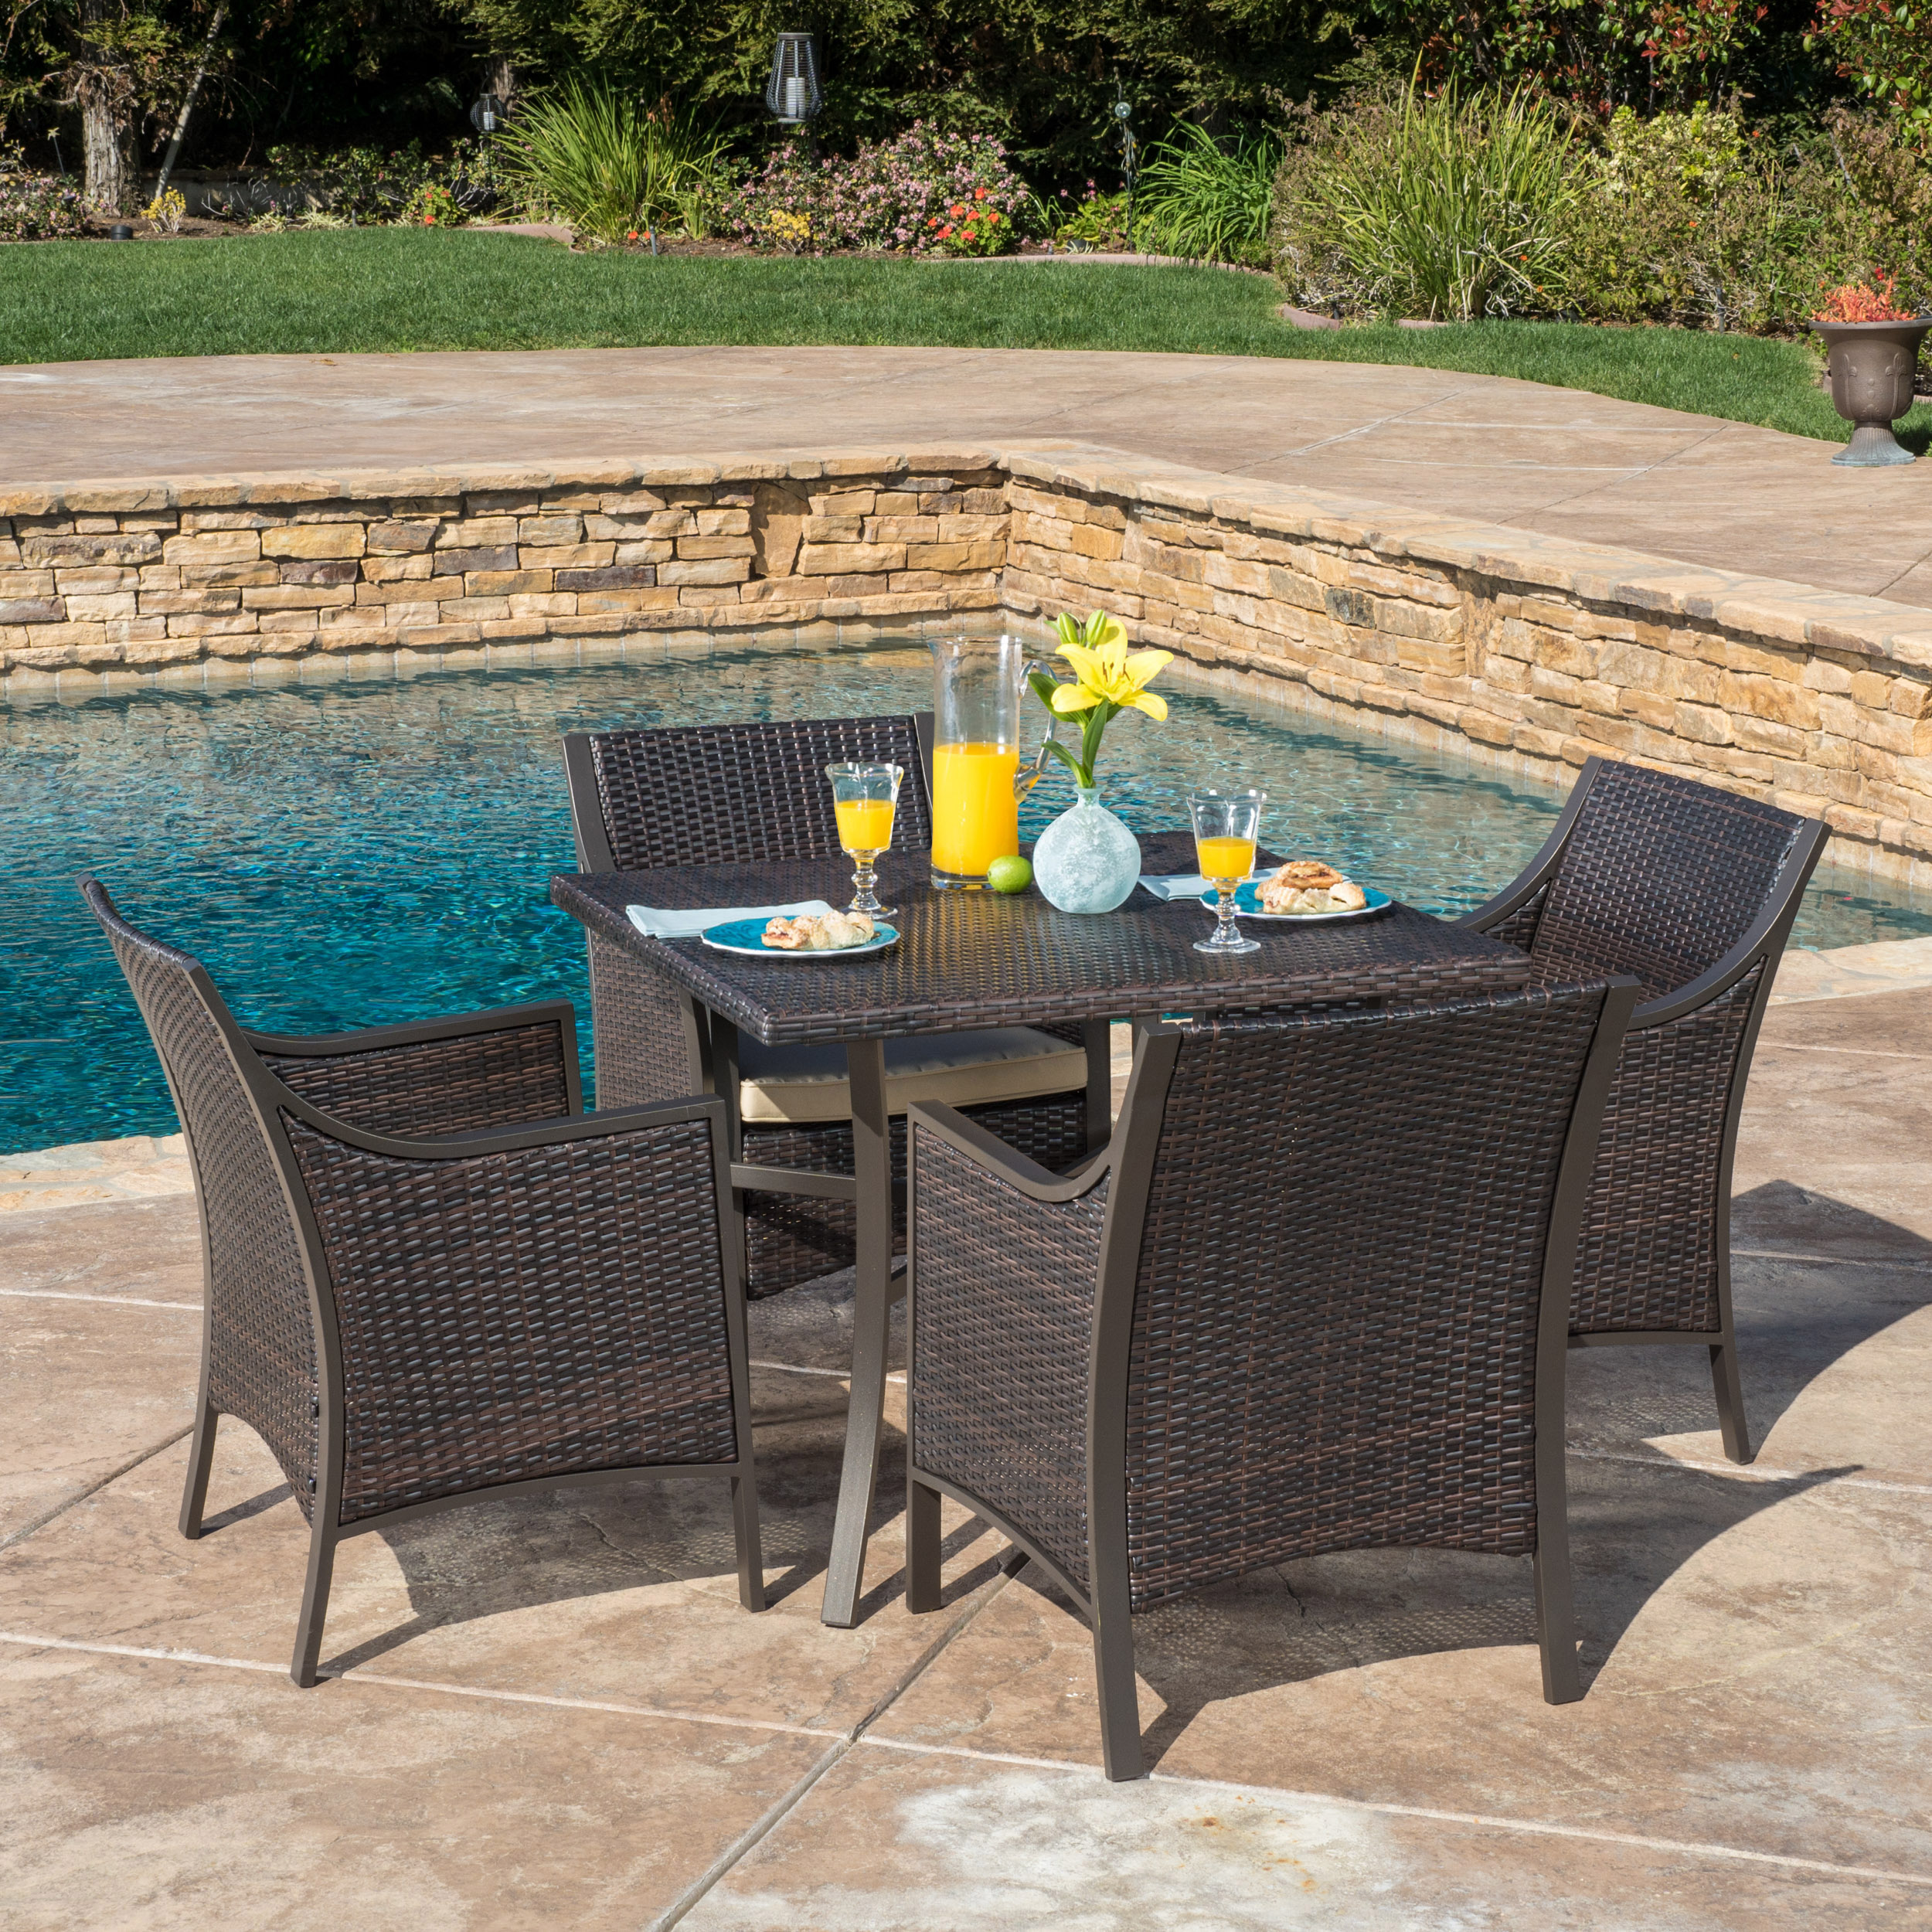 Montgomery 5 Piece Wicker and Aluminum Dining Set with Cushions, Multibrown